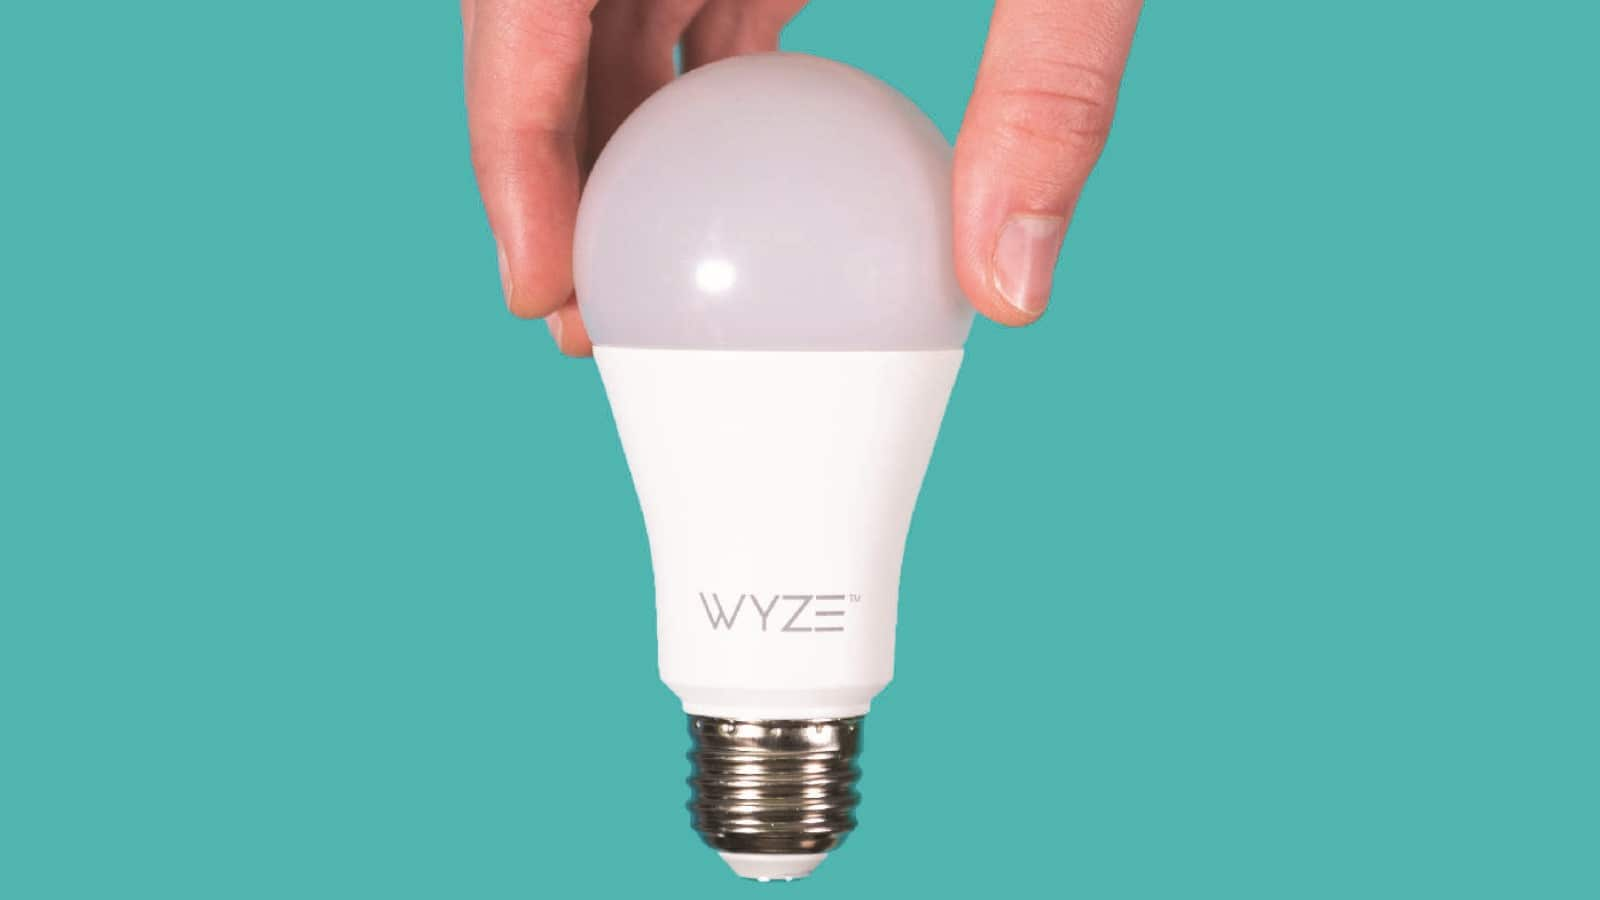 wyze smart light bulb in fingers